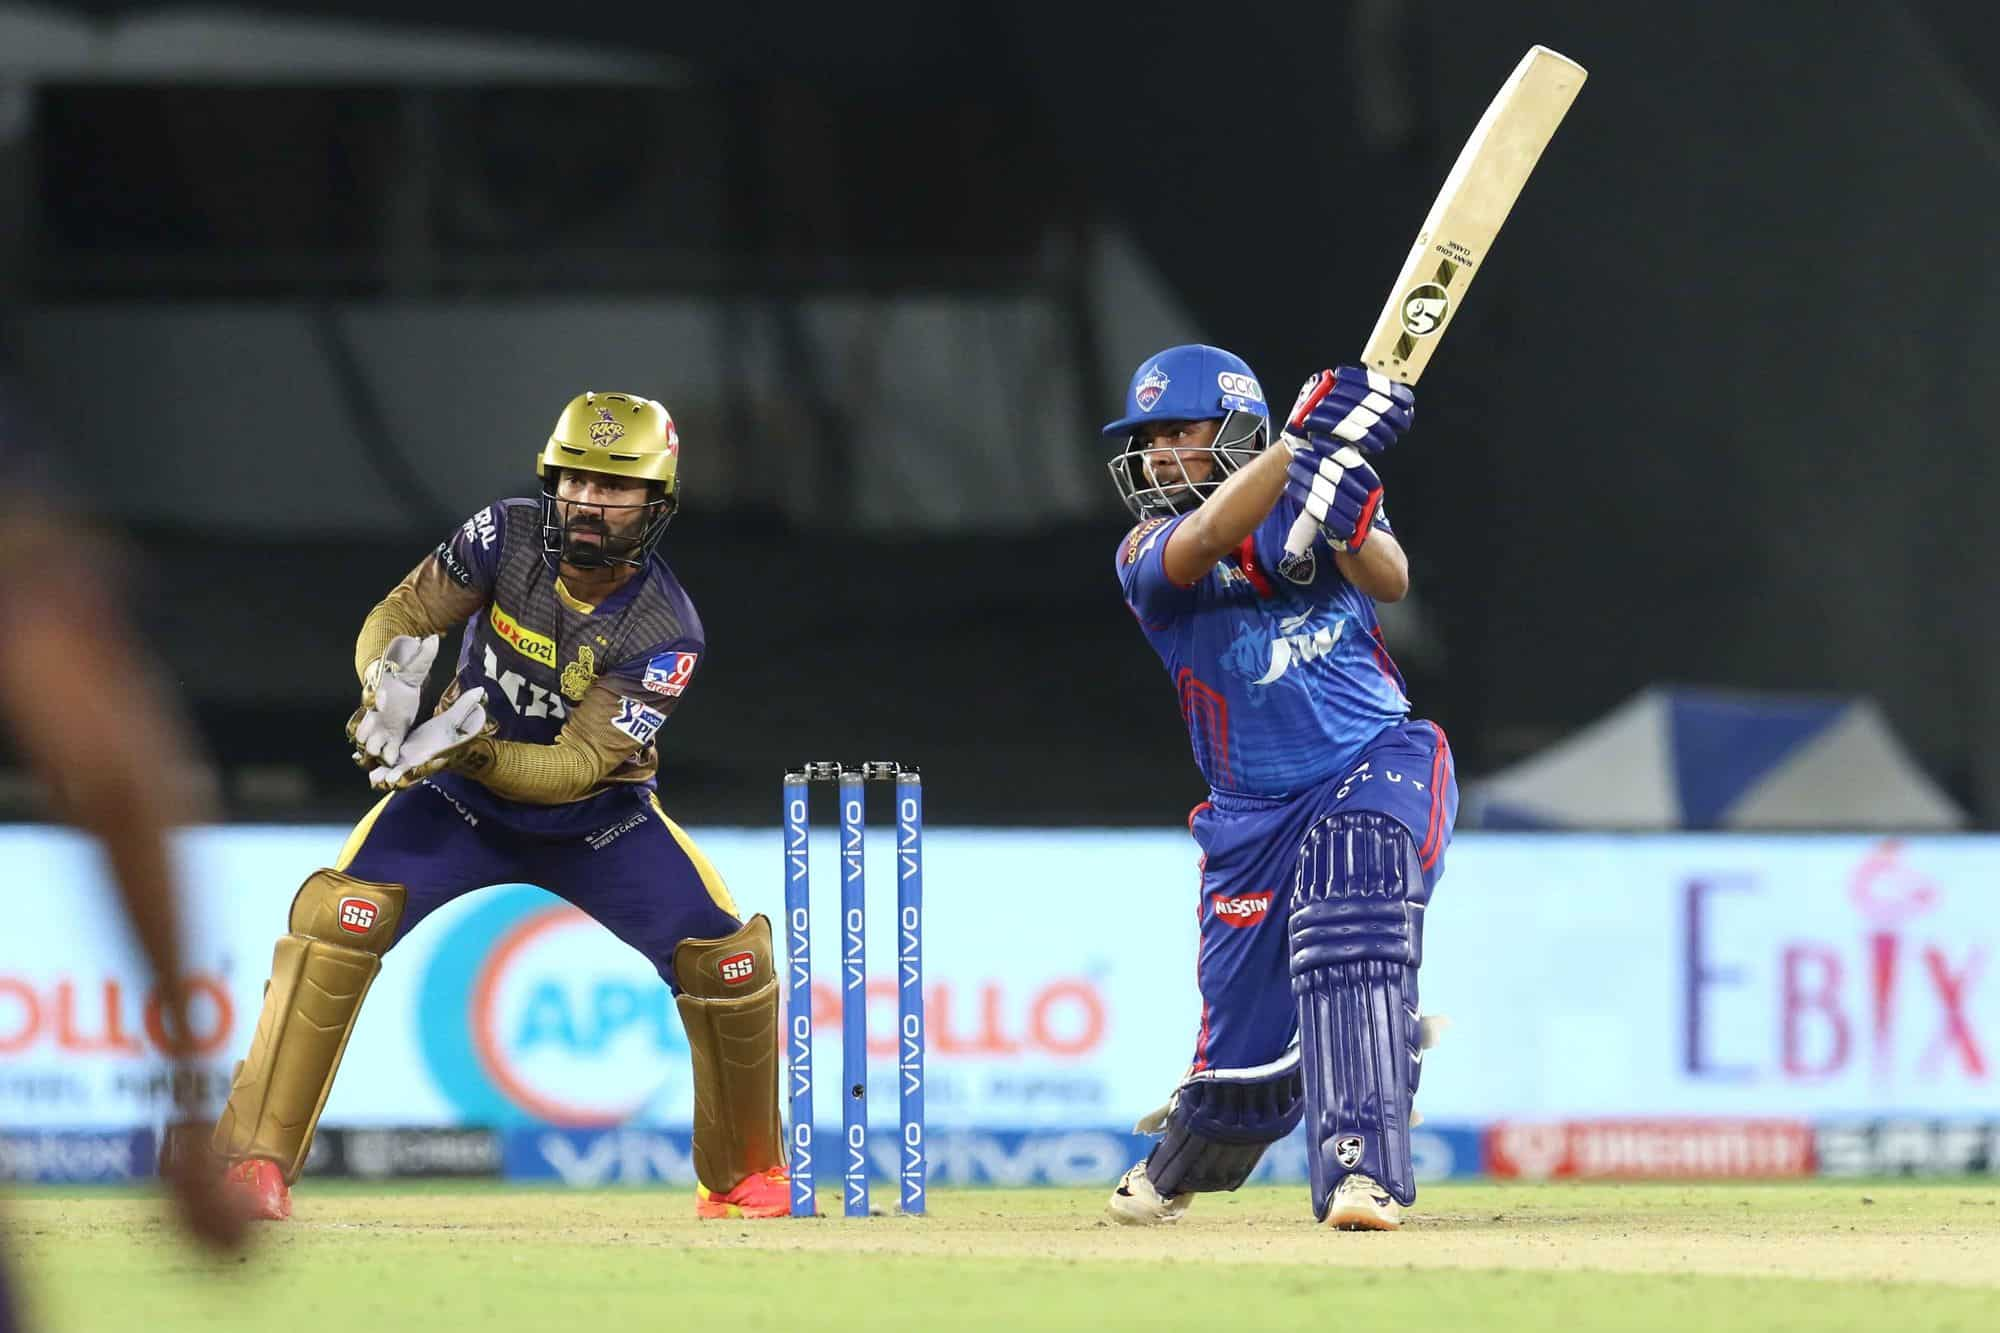 Prithvi Shaw Smashes The Fastest Fifty Of The IPL 2021 - DC vs KKR